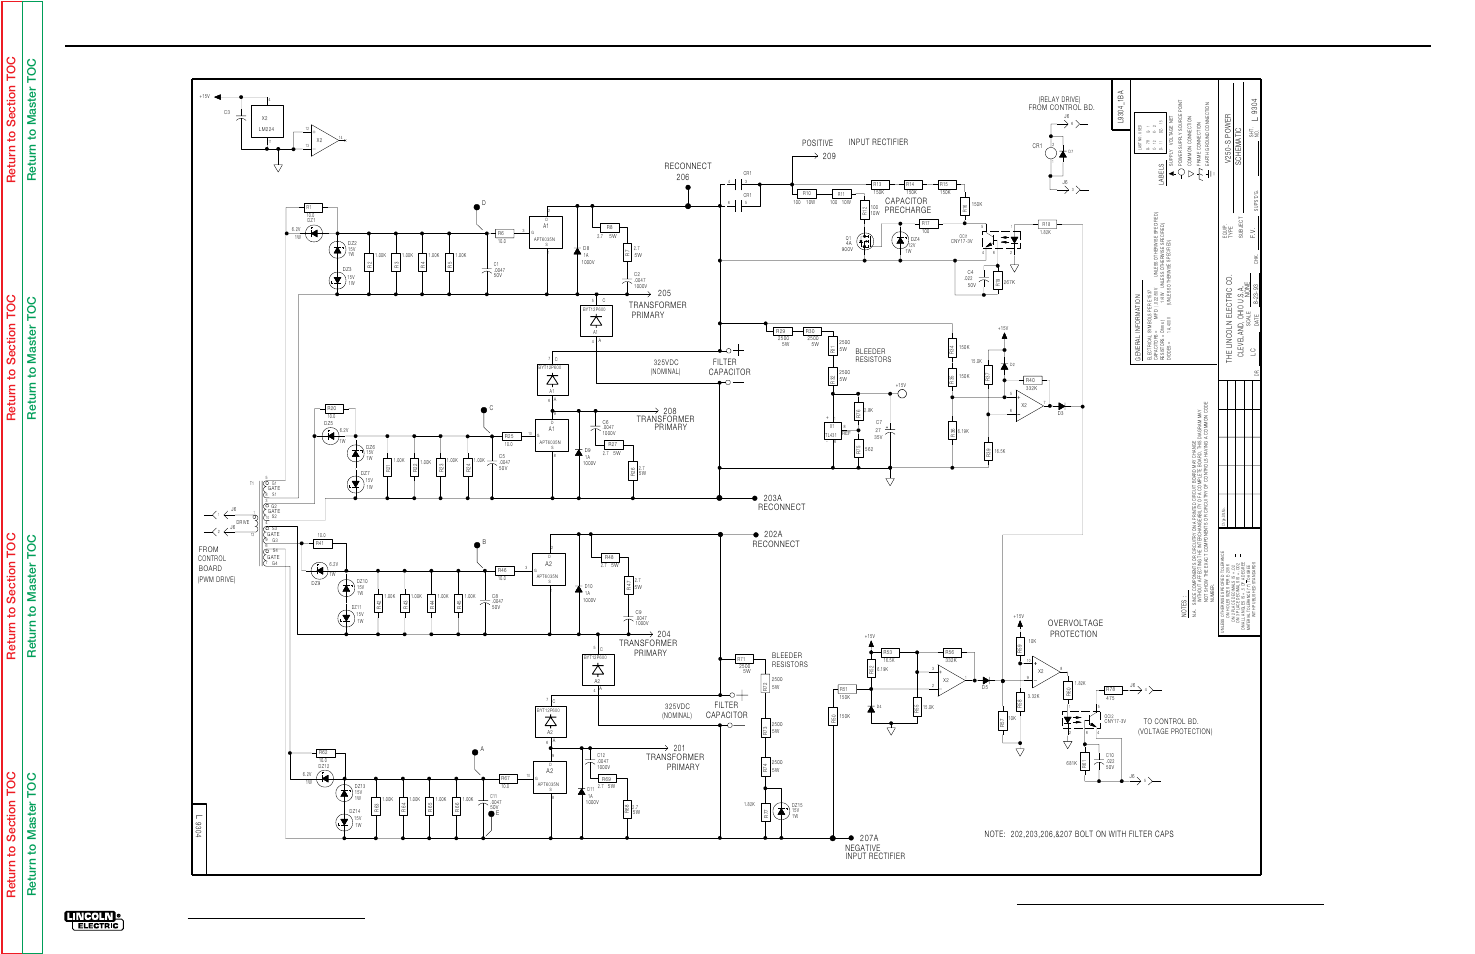 Electrical Diagrams Power Pc Board G2684 Schematic Invertec C11 Wiring Diagram V250s Lincoln Electric V250 S User Manual Page 118